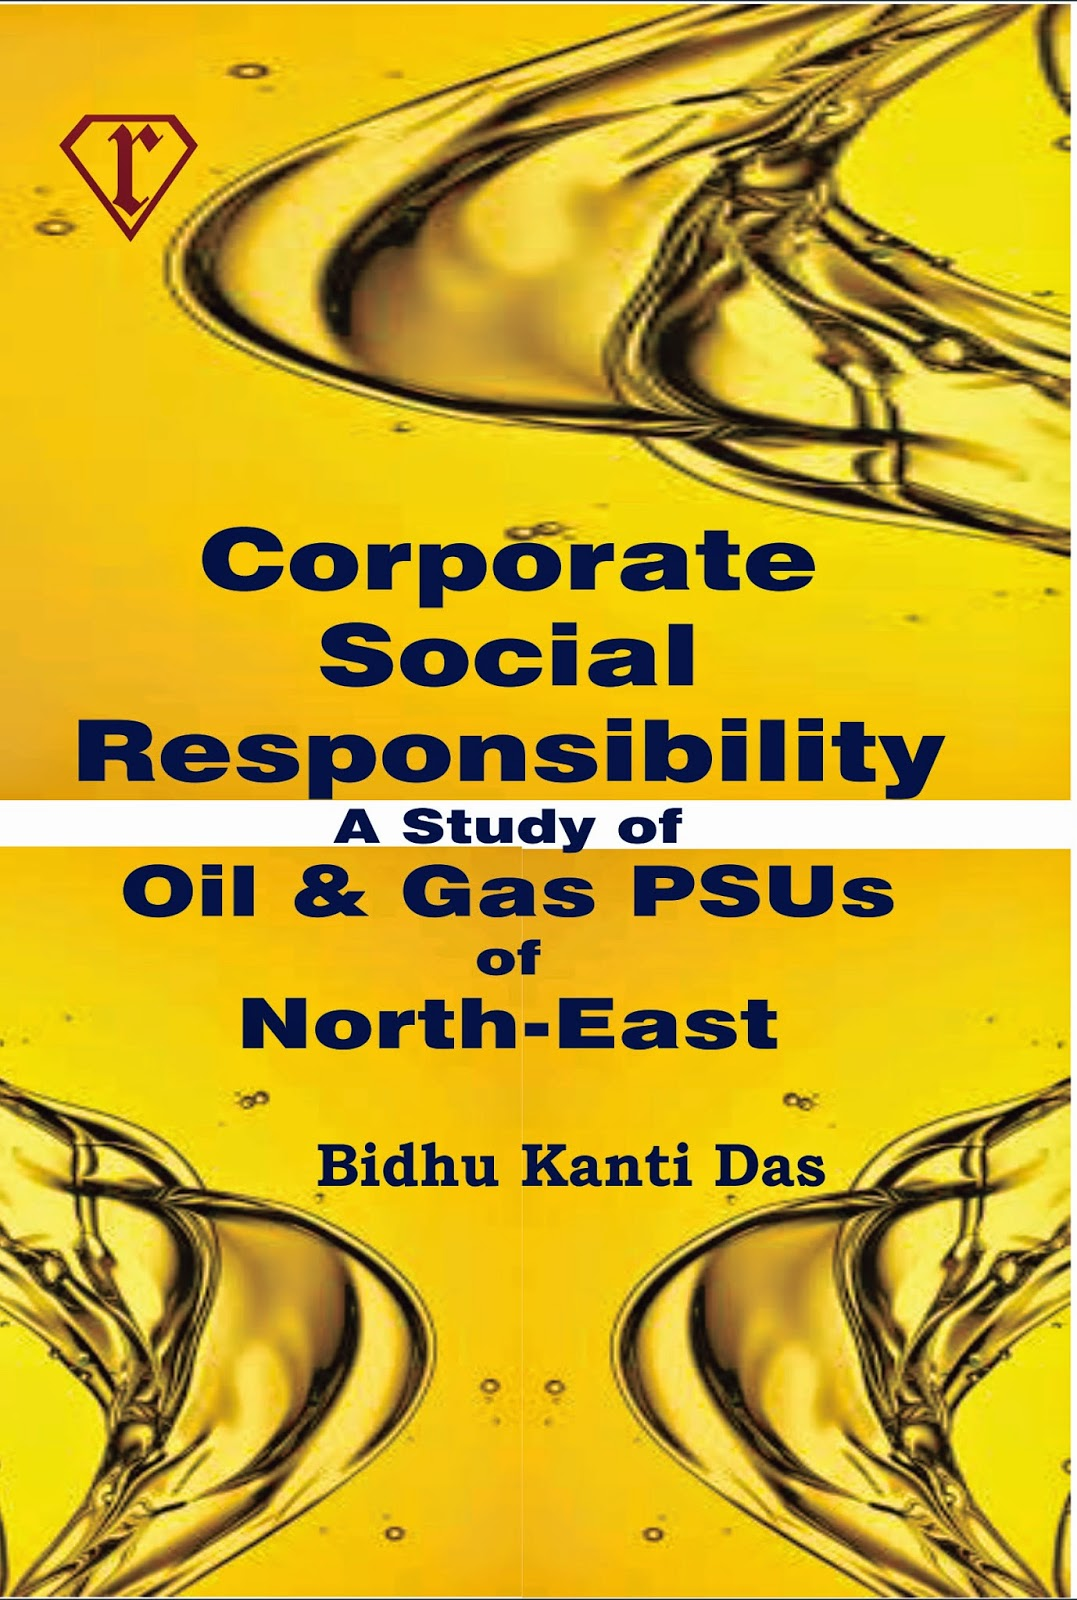 corporate responsibility essays Corporate citizenship, or corporate social responsibility (csr), is an important business practice of corporate self-regulation based on compliance with ethical standards, international practices and justice approach (rayner, 2003.